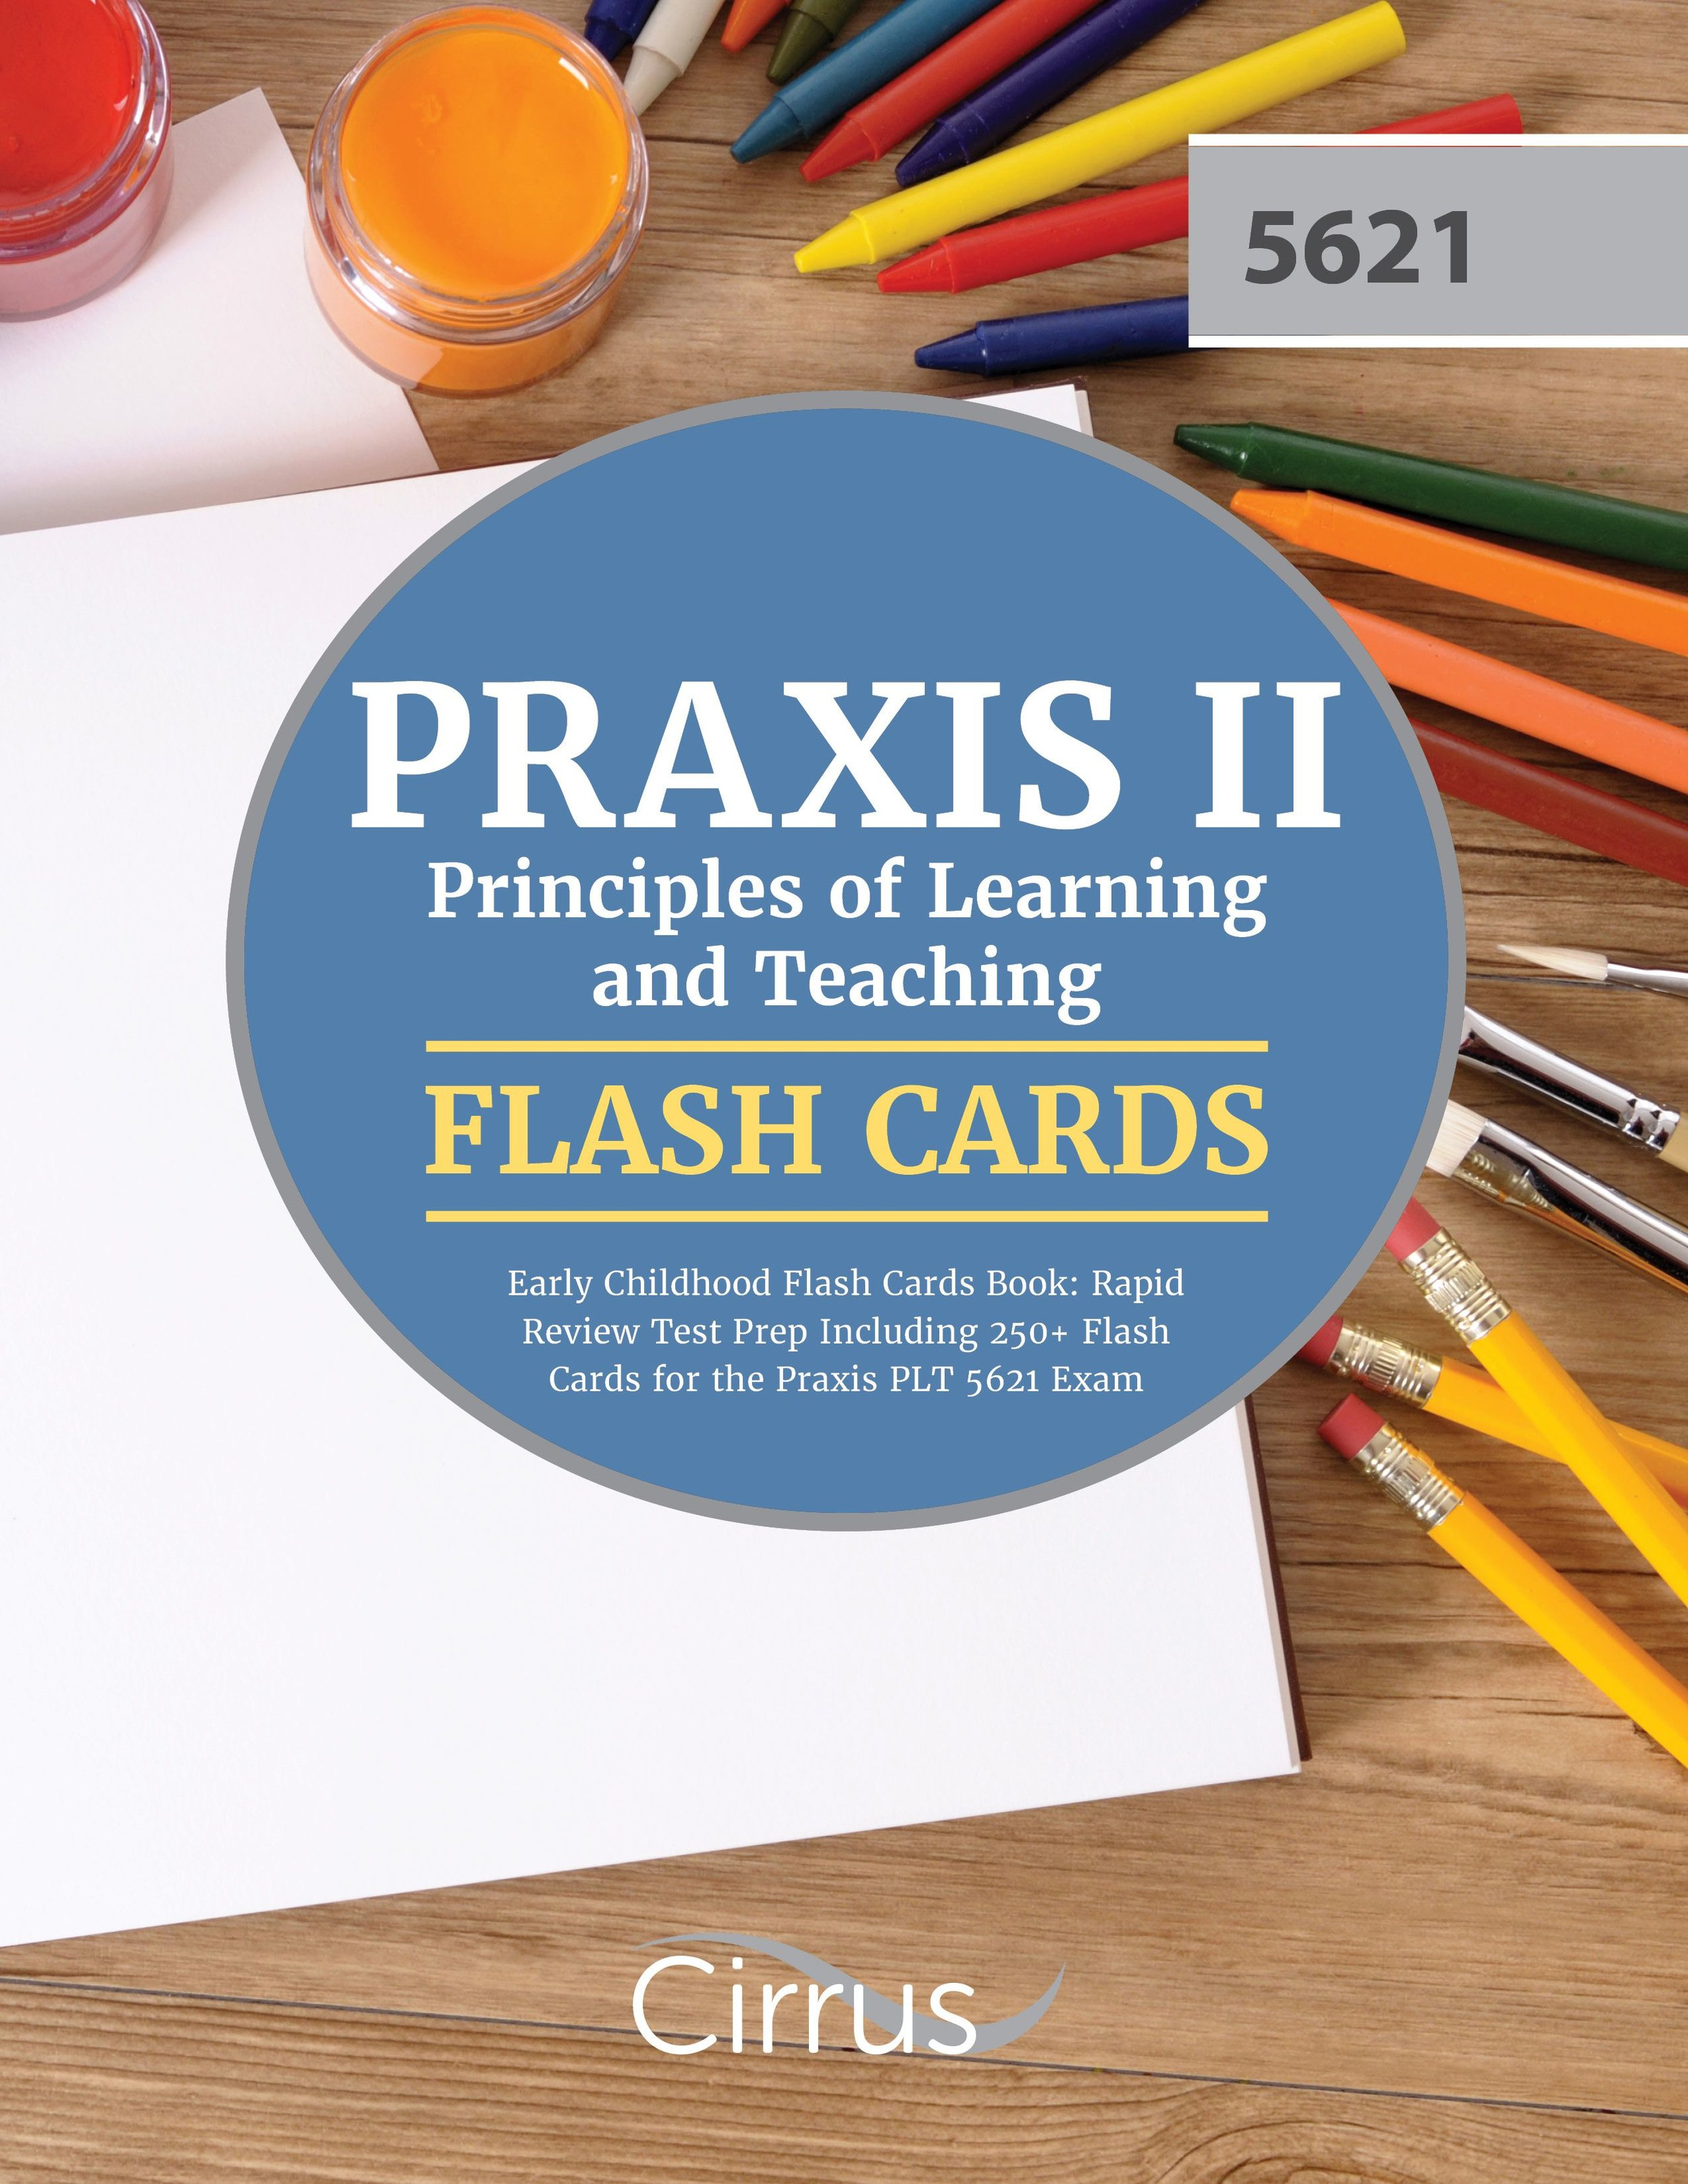 Praxis II Principles of Learning and Teaching Early Childhood Flash Cards Book